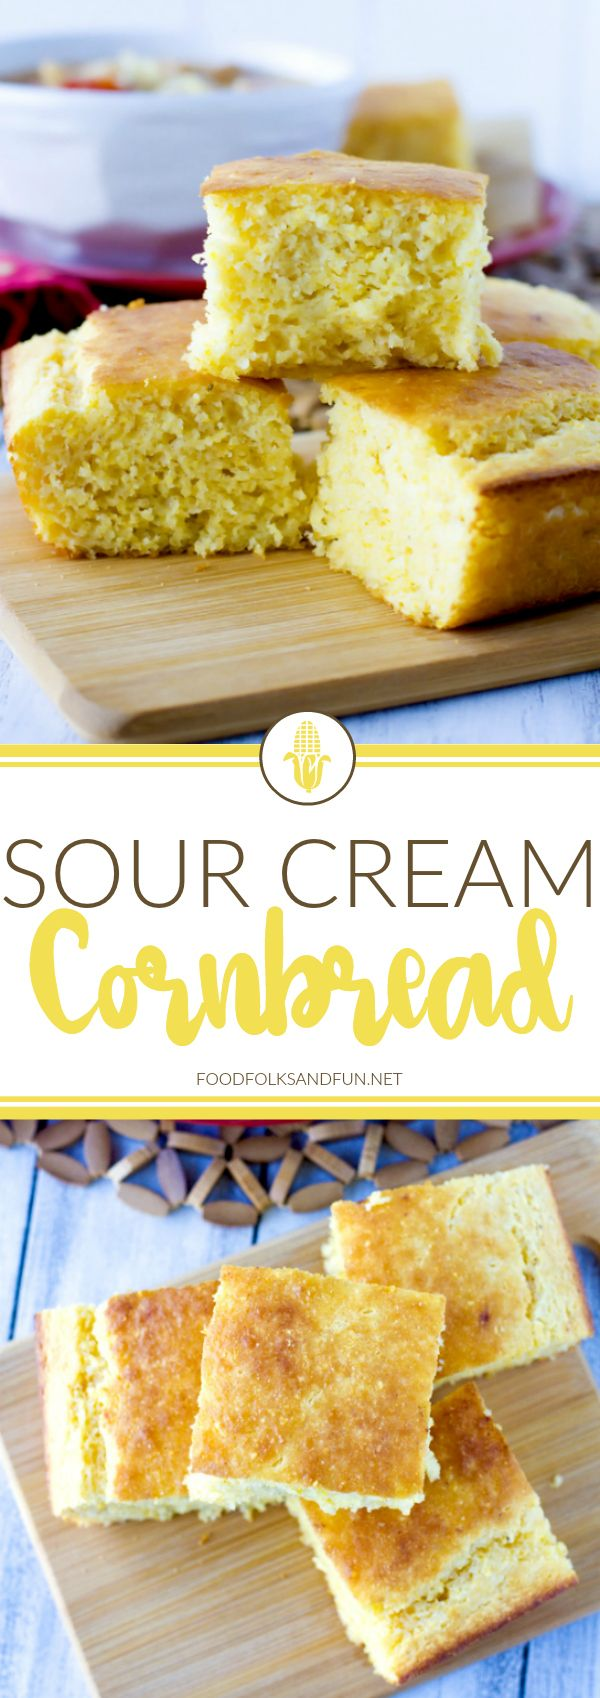 This Sour Cream Cornbread Recipe Is So Moist Delicious And Not Overly Sweet It S Super Easy To Mak Cornbread Recipe Sweet Sweet Cornbread Sour Cream Recipes